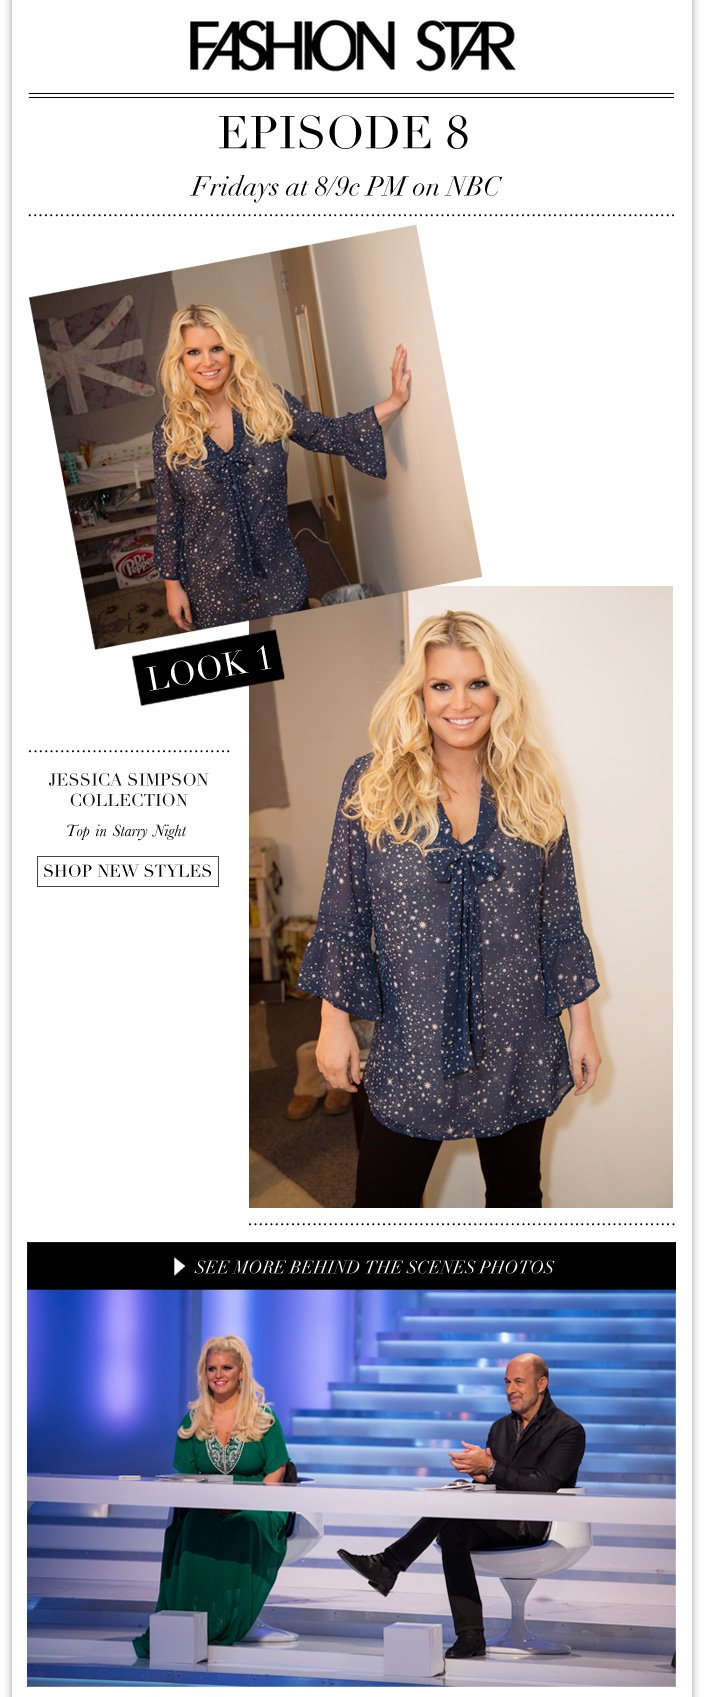 Jessica wears a top by Jessica Simpson Collection + 20% OFF Mother's Day Gifts ends Tuesday.